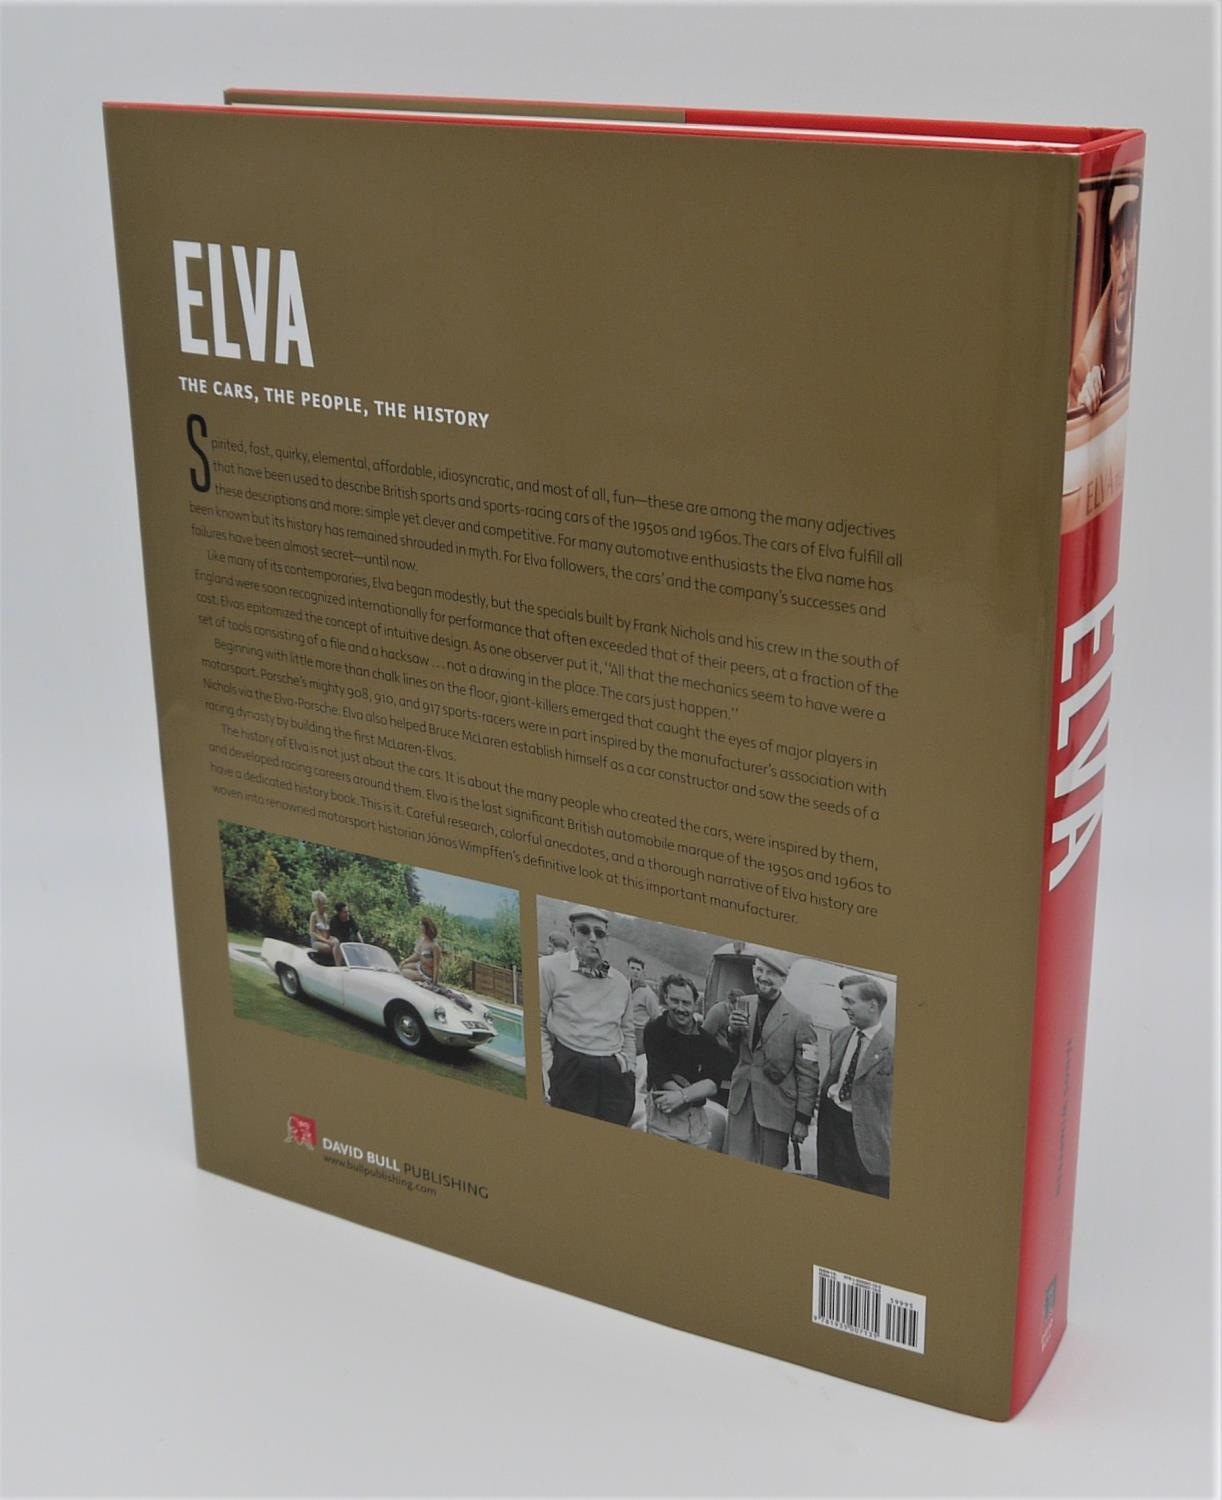 JANOS WIMPFFEN: ELVA foreword by Stirling Moss detailing the history of the cars of Elva and their - Image 2 of 2